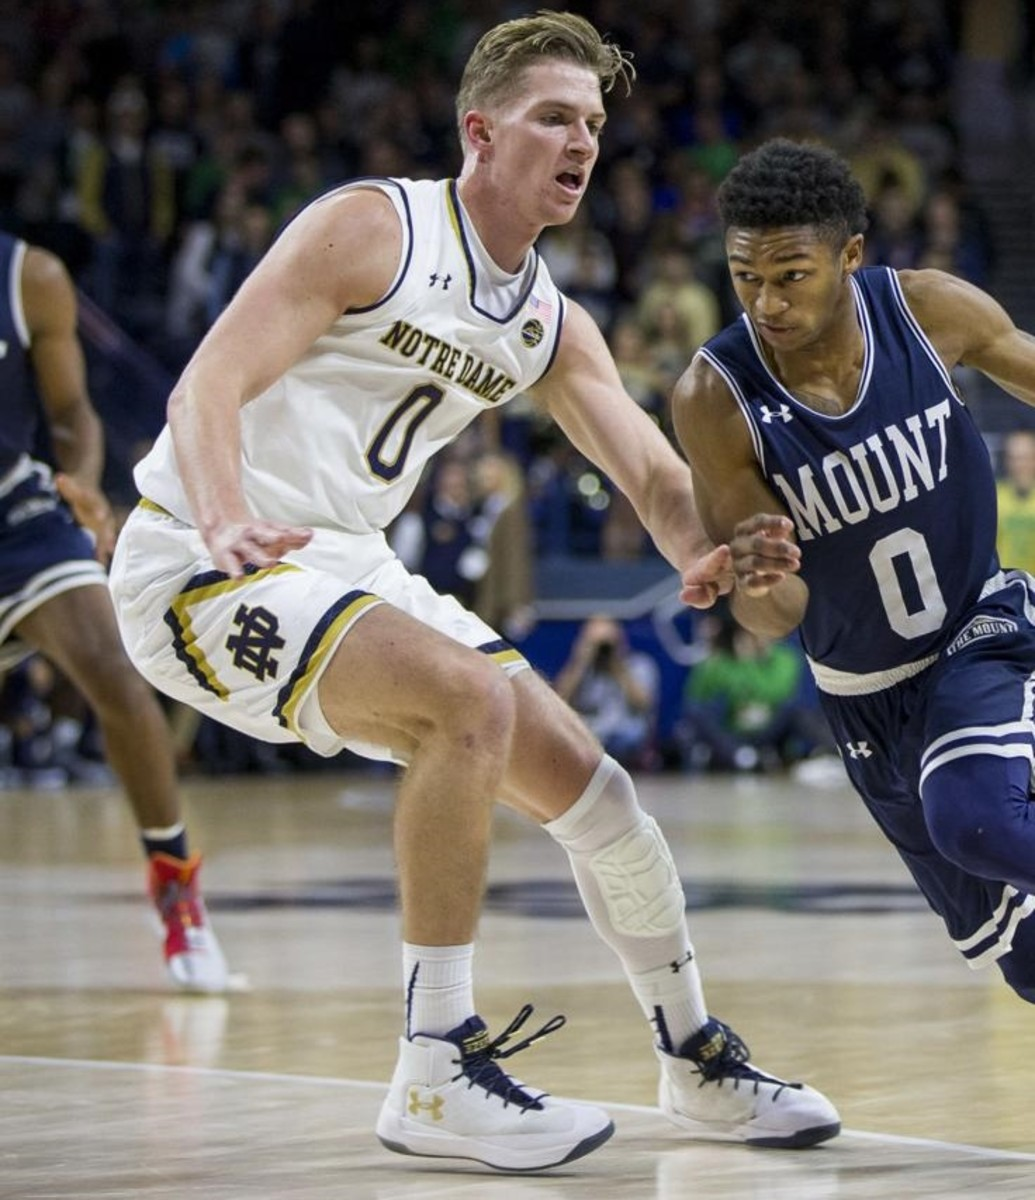 Rex Pflueger's return to the court will be a welcome sight for the Irish.